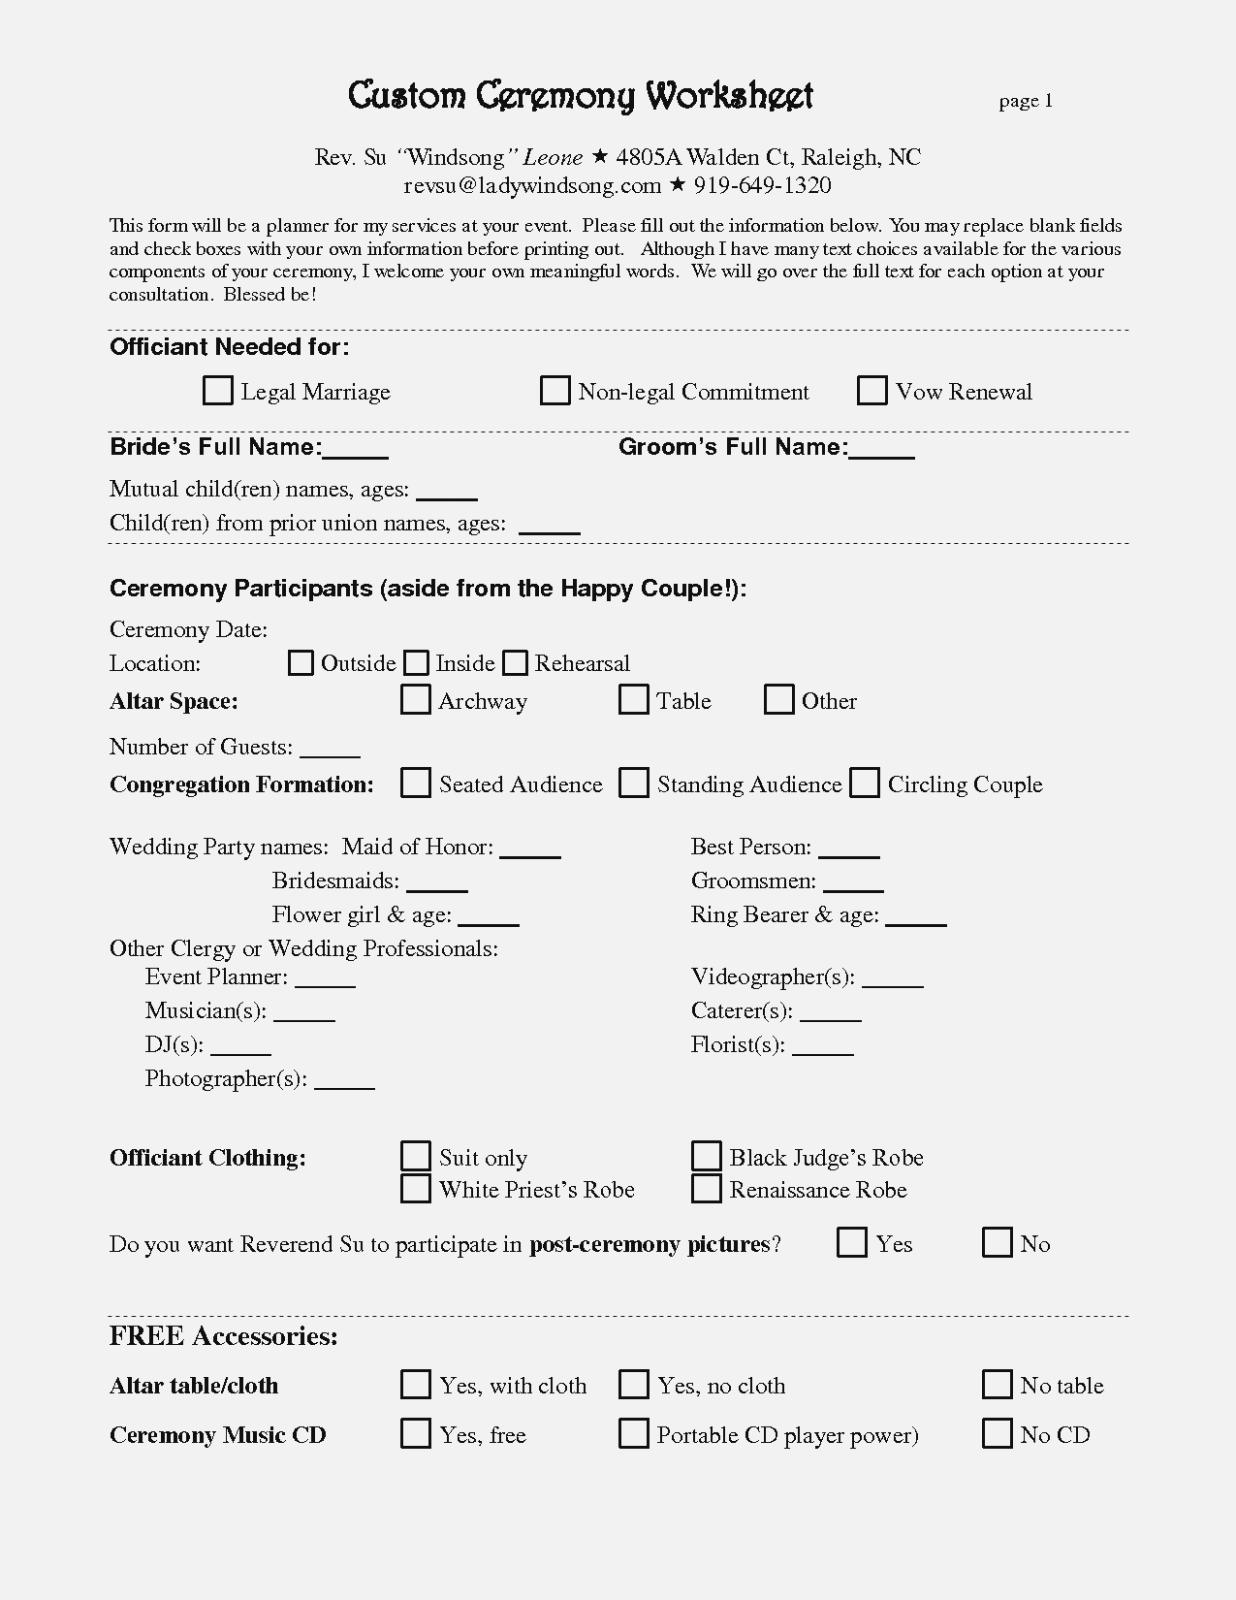 Free Wedding Planner Contract Form